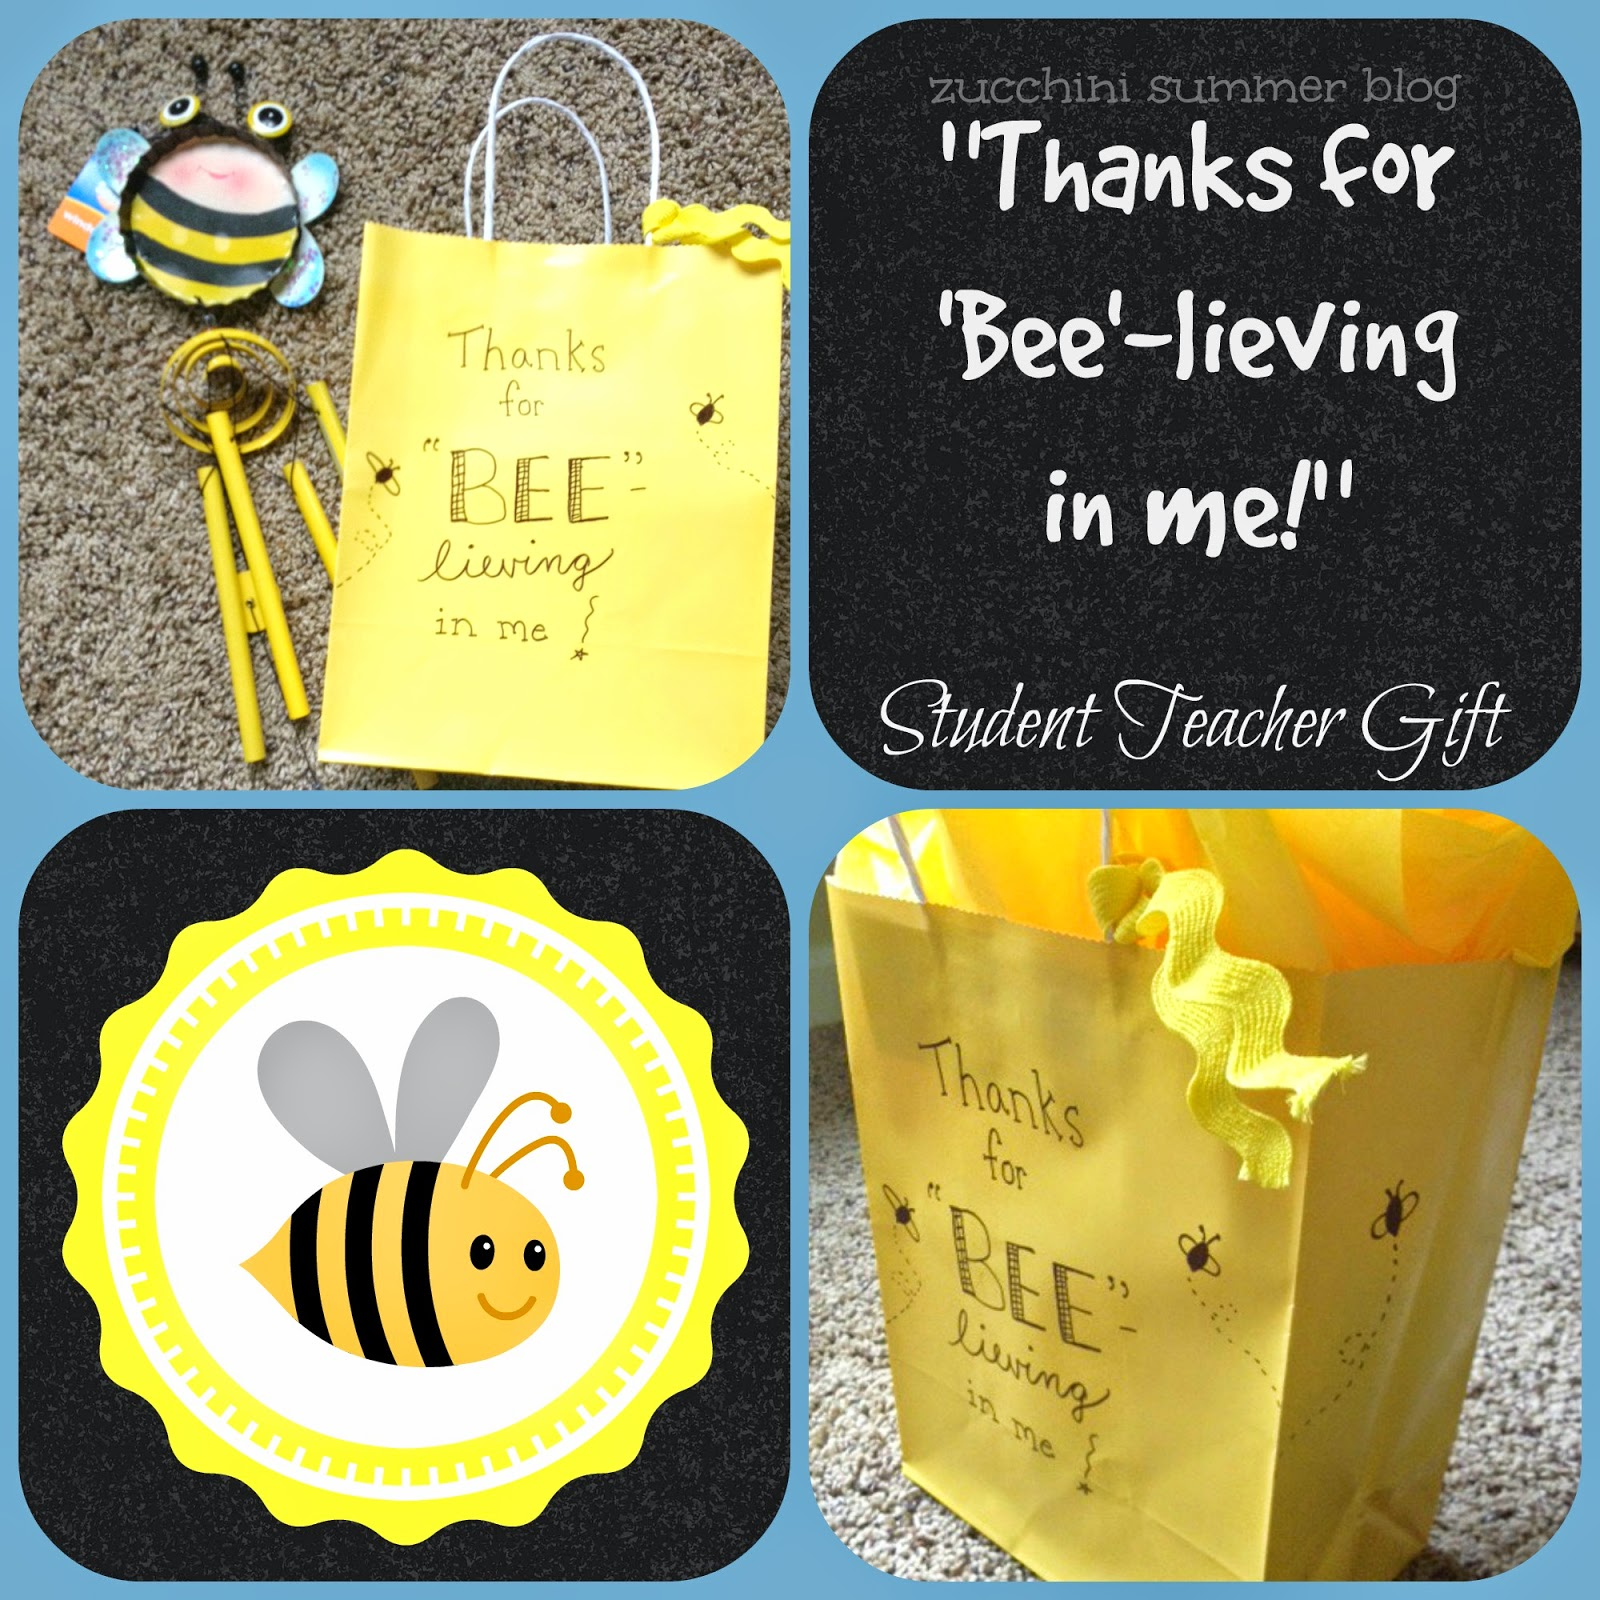 zucchini summer blog, teacher gift, bumblebee gift, yellow gift, student teacher, cooperating teacher gift ideas